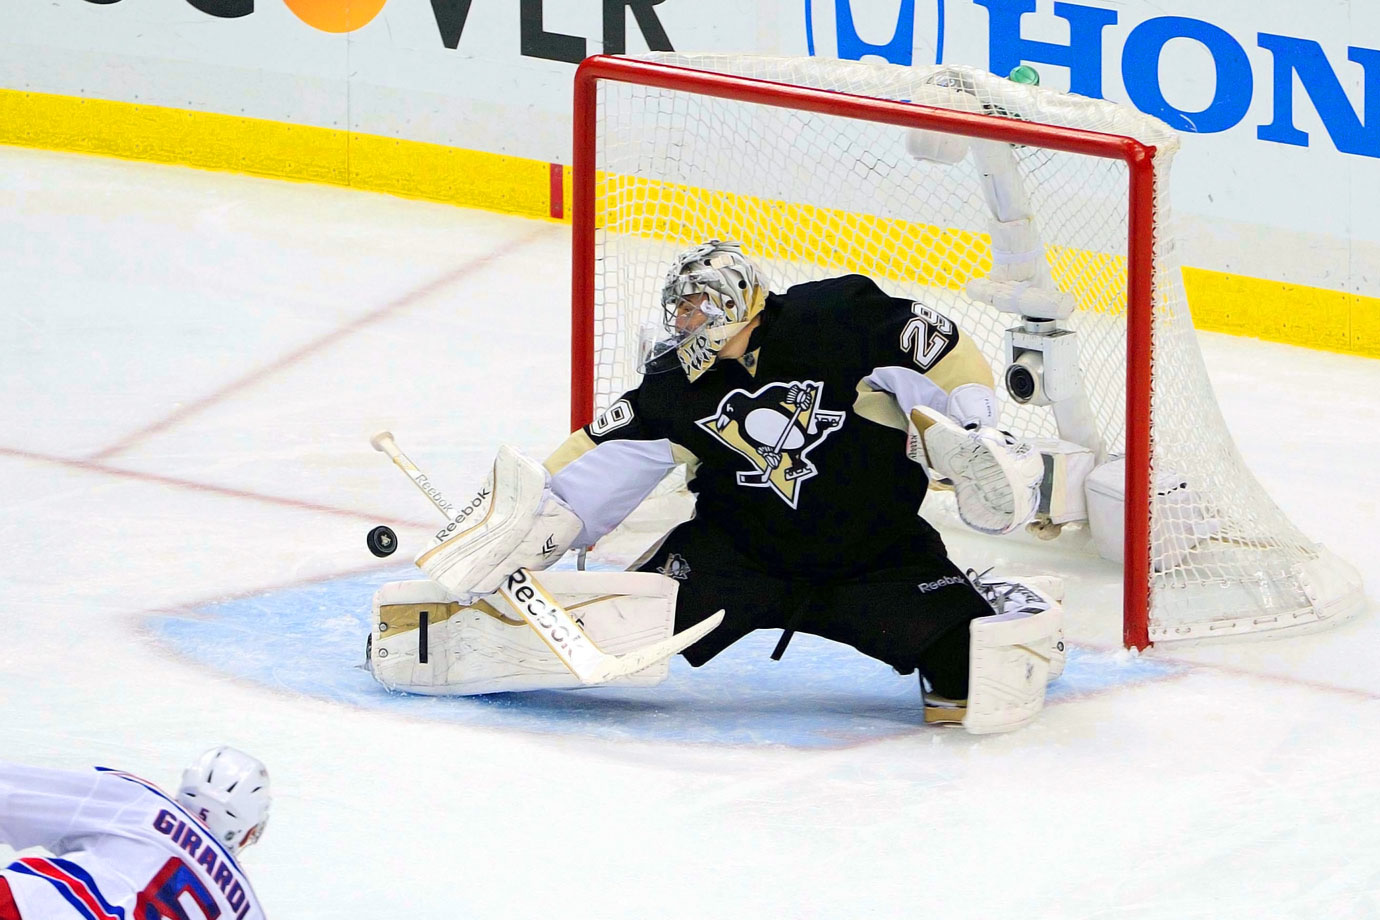 Though unnervingly erratic at times, Fleury proved his mettle during the Penguins' run to the 2009 Stanley Cup, especially during the thrilling seven-game final vs. Detroit. — Notable picks: No. 2: Eric Staal, C, Carolina Hurricanes | No. 5: Tomas Vanek, LW, Buffalo Sabres | No. 9: Dion Phaneuf, D, Calgary Flames | No. 11: Jeff Carter, C, Philadelphia Flyers | No. 17: Zach Parise, C, New Jersey Devils | No. 19: Ryan Getzlaf, C, Anaheim Ducks| No. 28: Corey Perry, RW, Anaheim Ducks | No. 49: Shea Weber, D, Nashville Predators | No. 205: Joe Pavelski, C, San Jose Sharks | No. 245: Dustin Byfuglien, D, Chicago Blackhawks